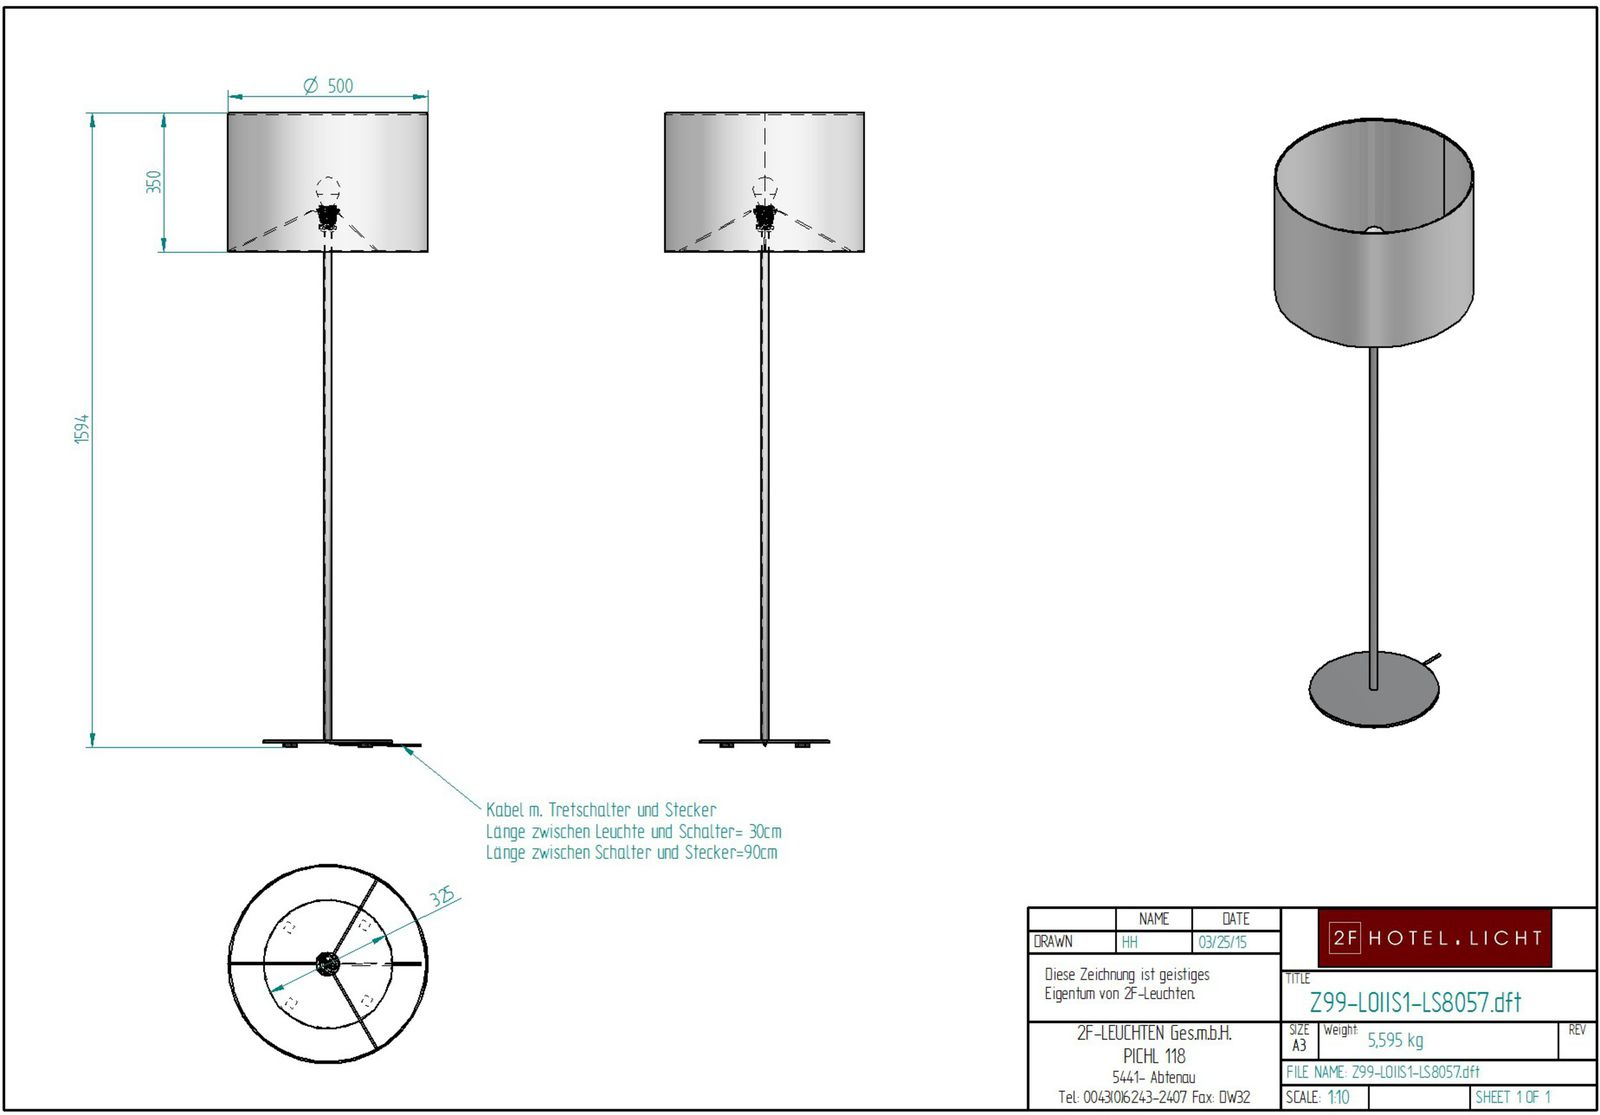 Floor lamp h=1600 b=460 technical data: 1xE27 max.100W